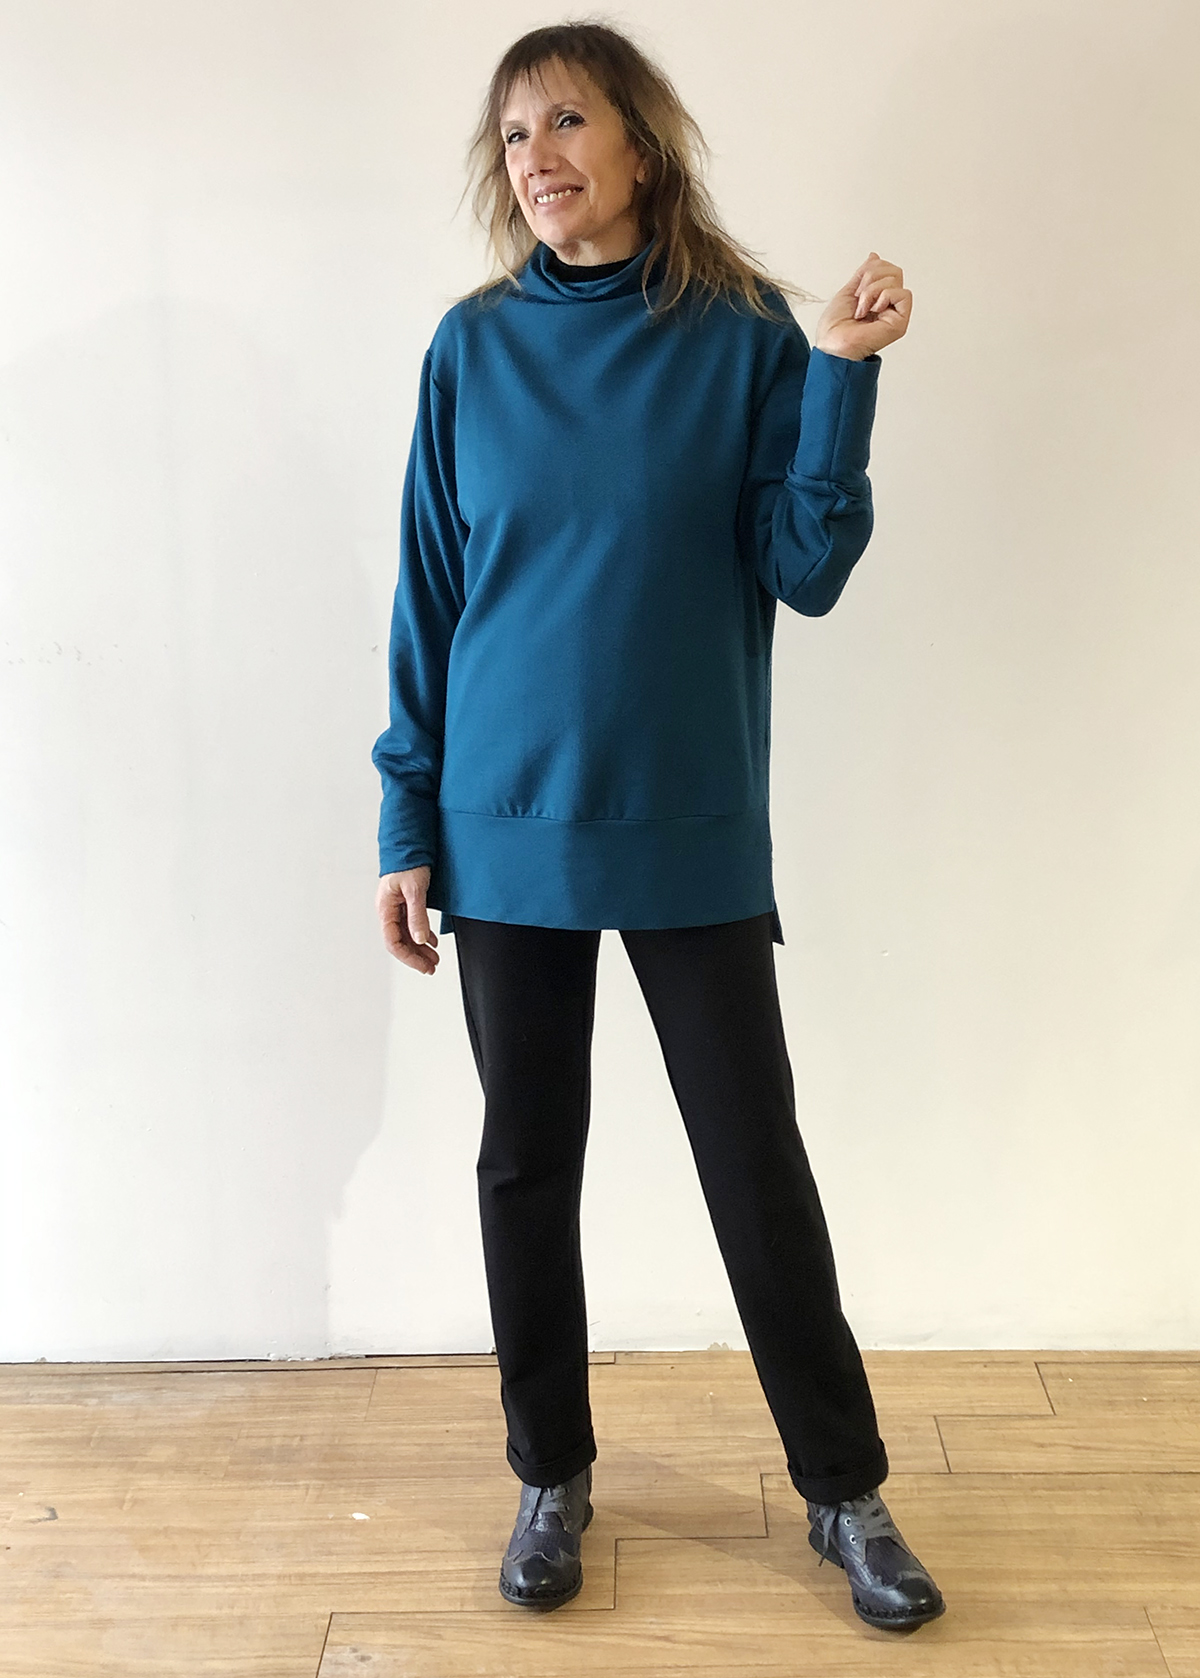 The model is wearing a sweater that goes past her hips, in Moroccan blue